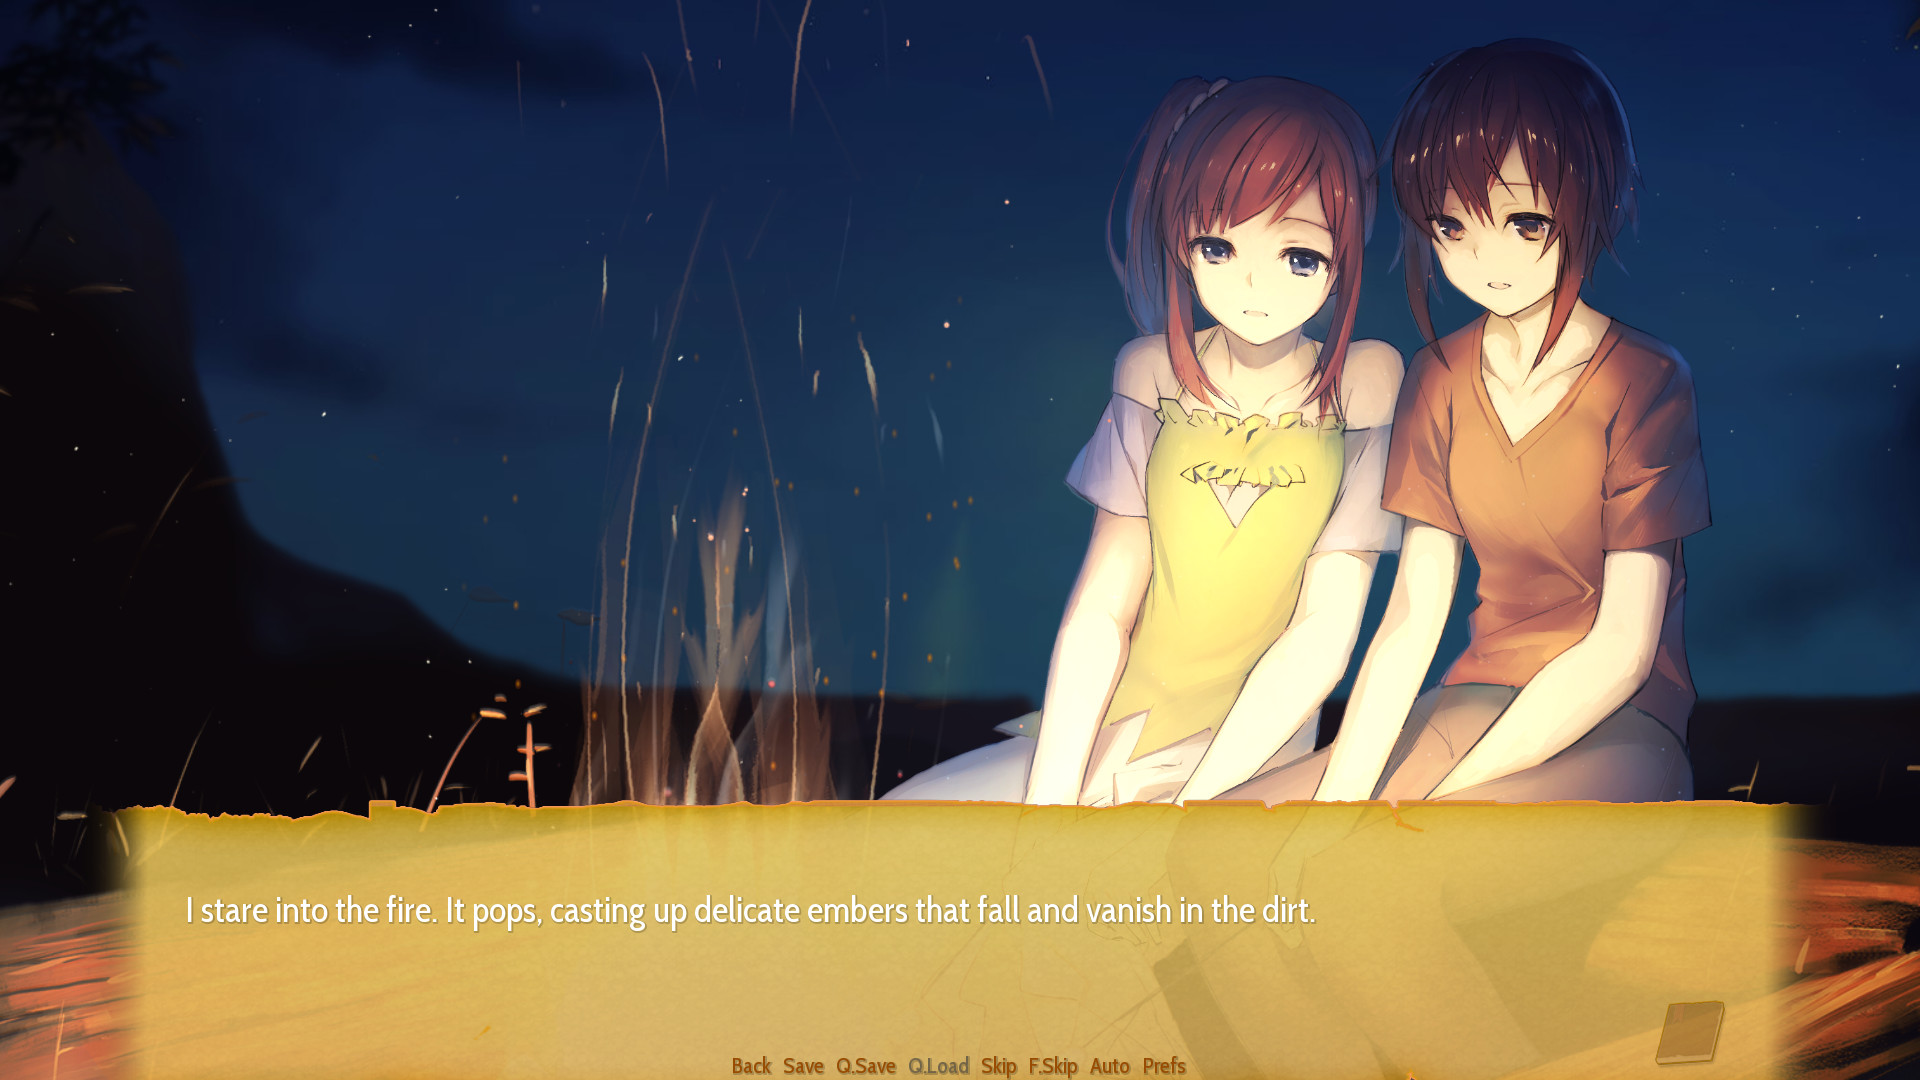 The Ren'Py Visual Novel Engine